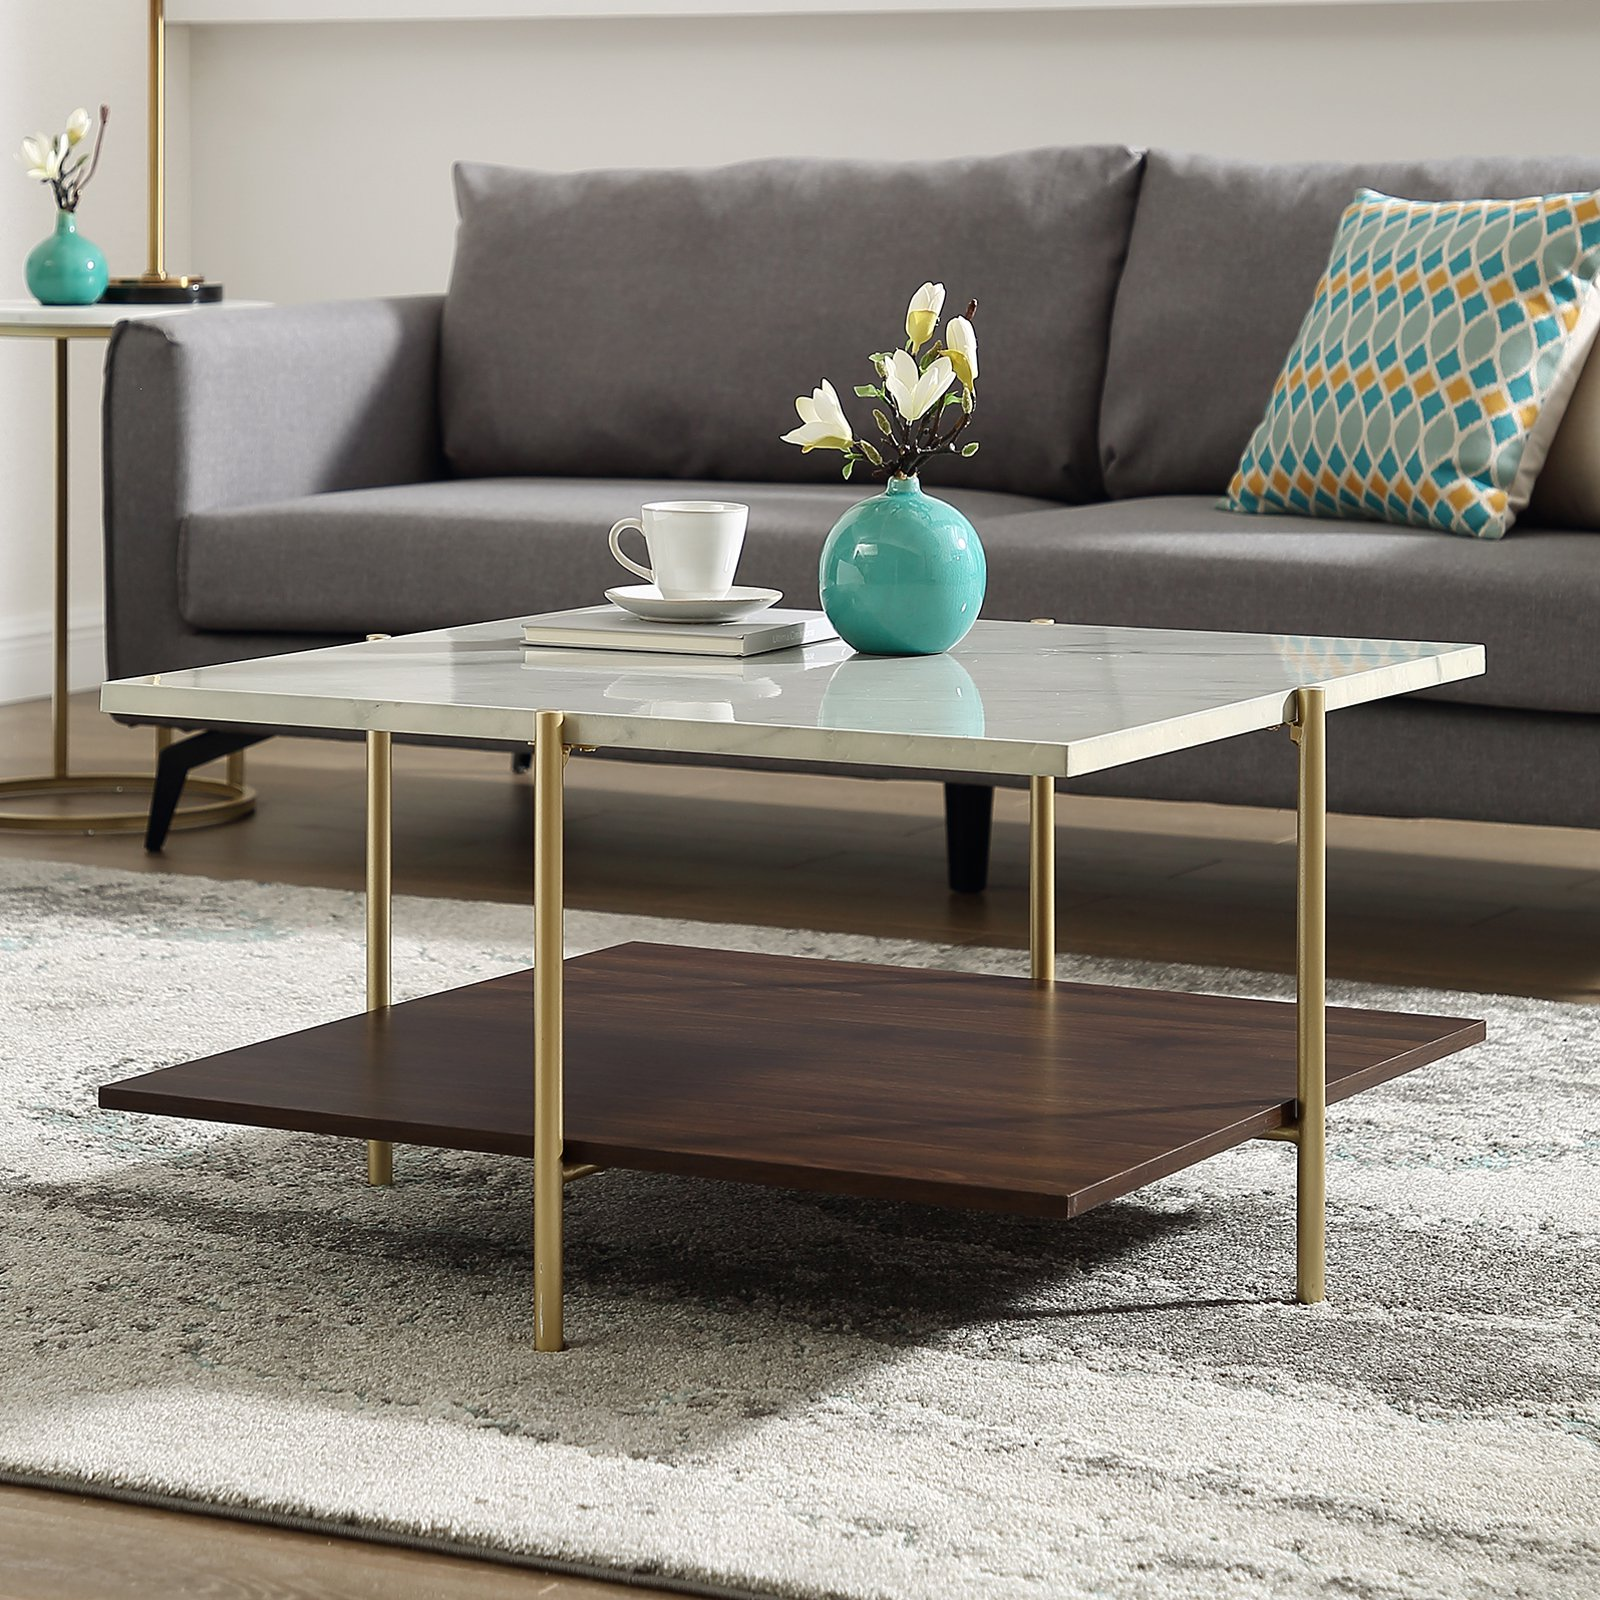 Manor Park Mid Century Square Coffee Table In 2021 Coffee Table Coffee Table Square Modern Wood Coffee Table [ 1600 x 1600 Pixel ]